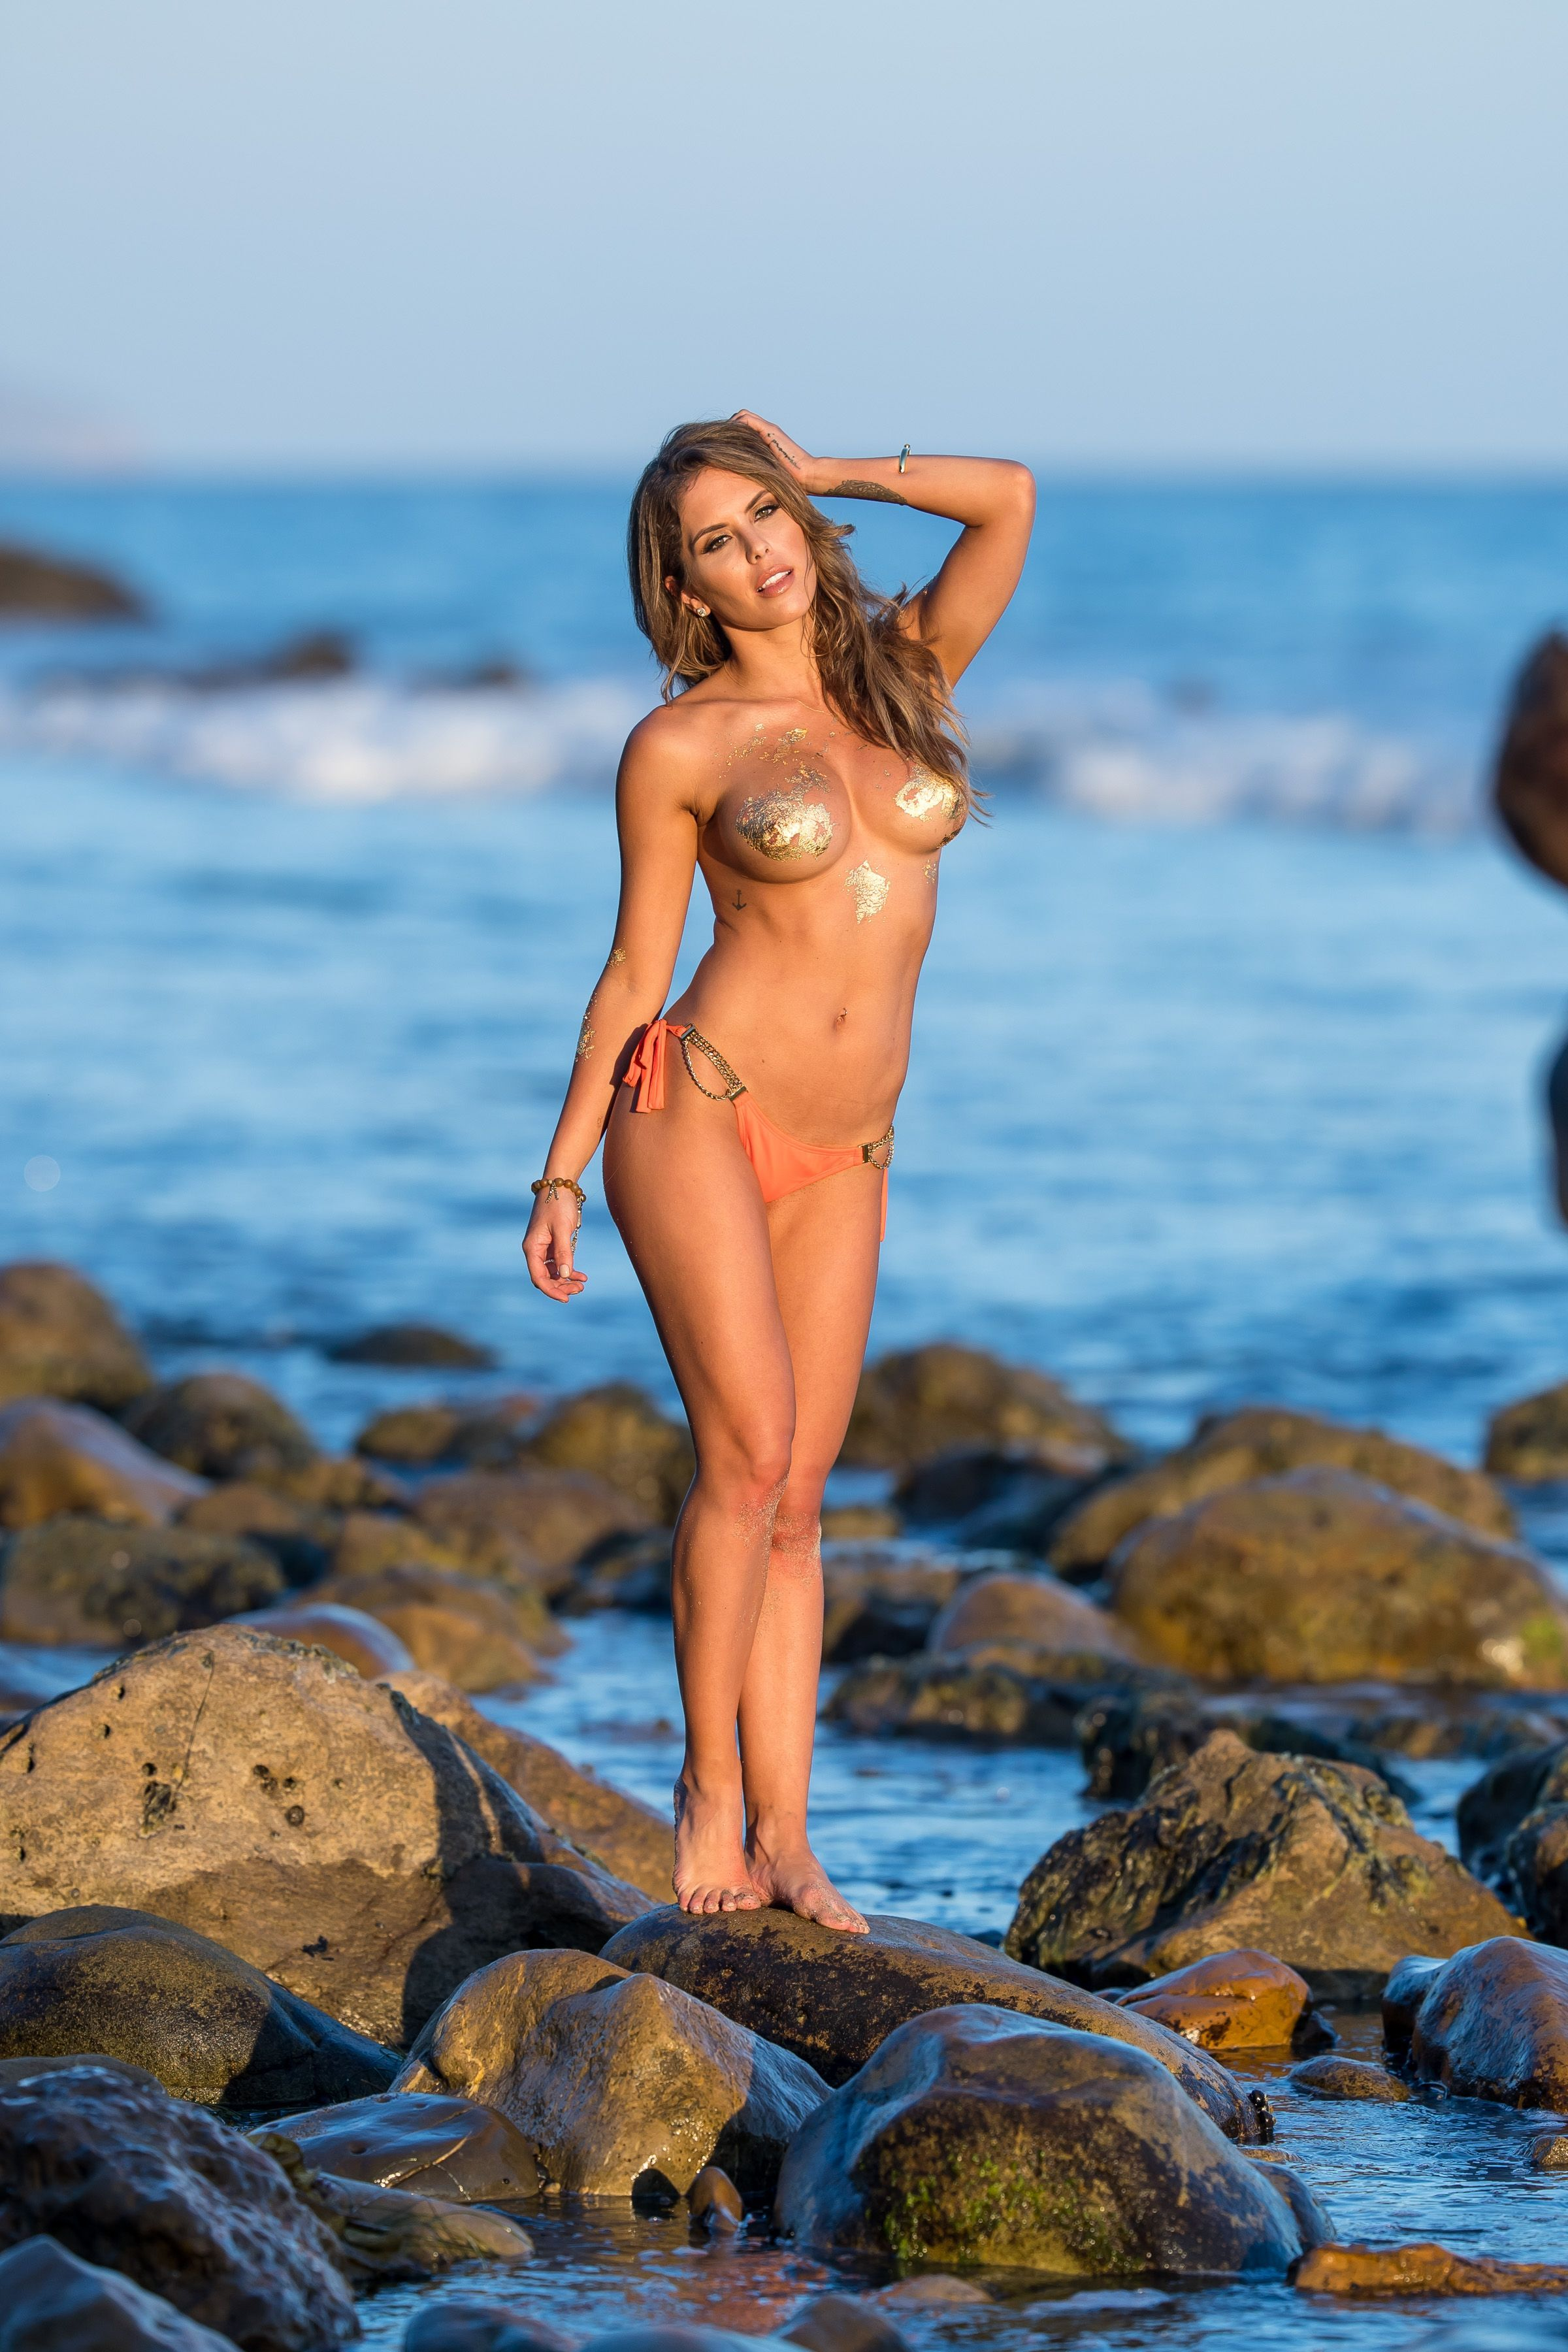 Brittney-Palmer-Sexy-Topless-36-thefappeningblog.com_.jpg